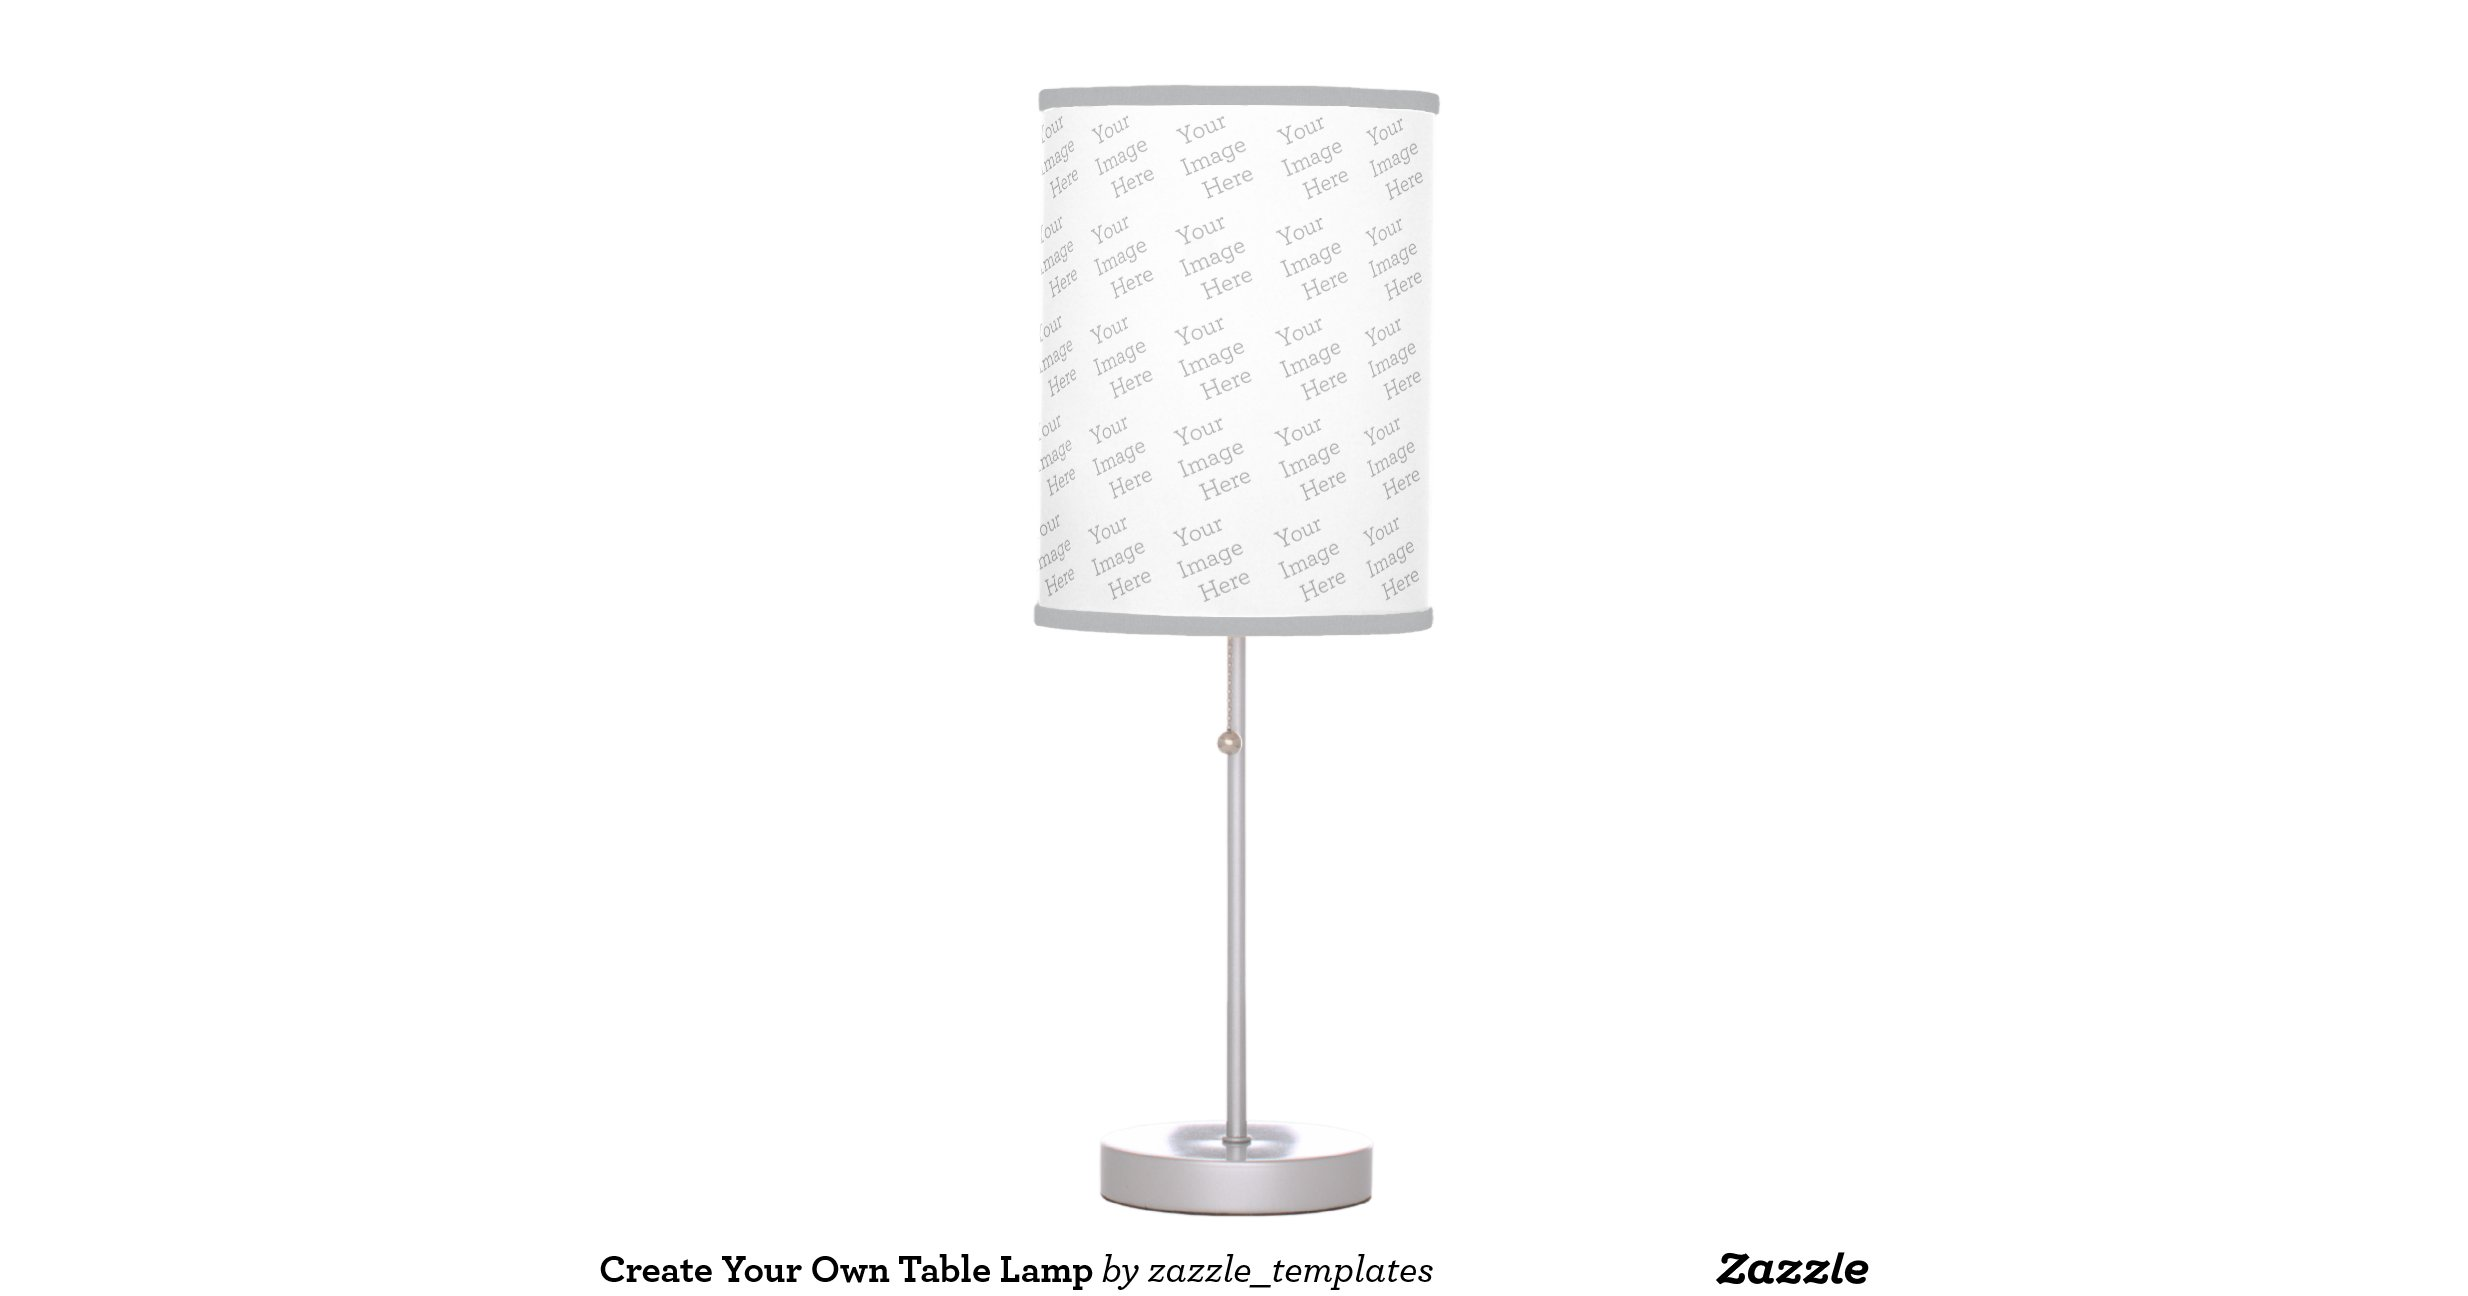 Create Your Own Table Lamp